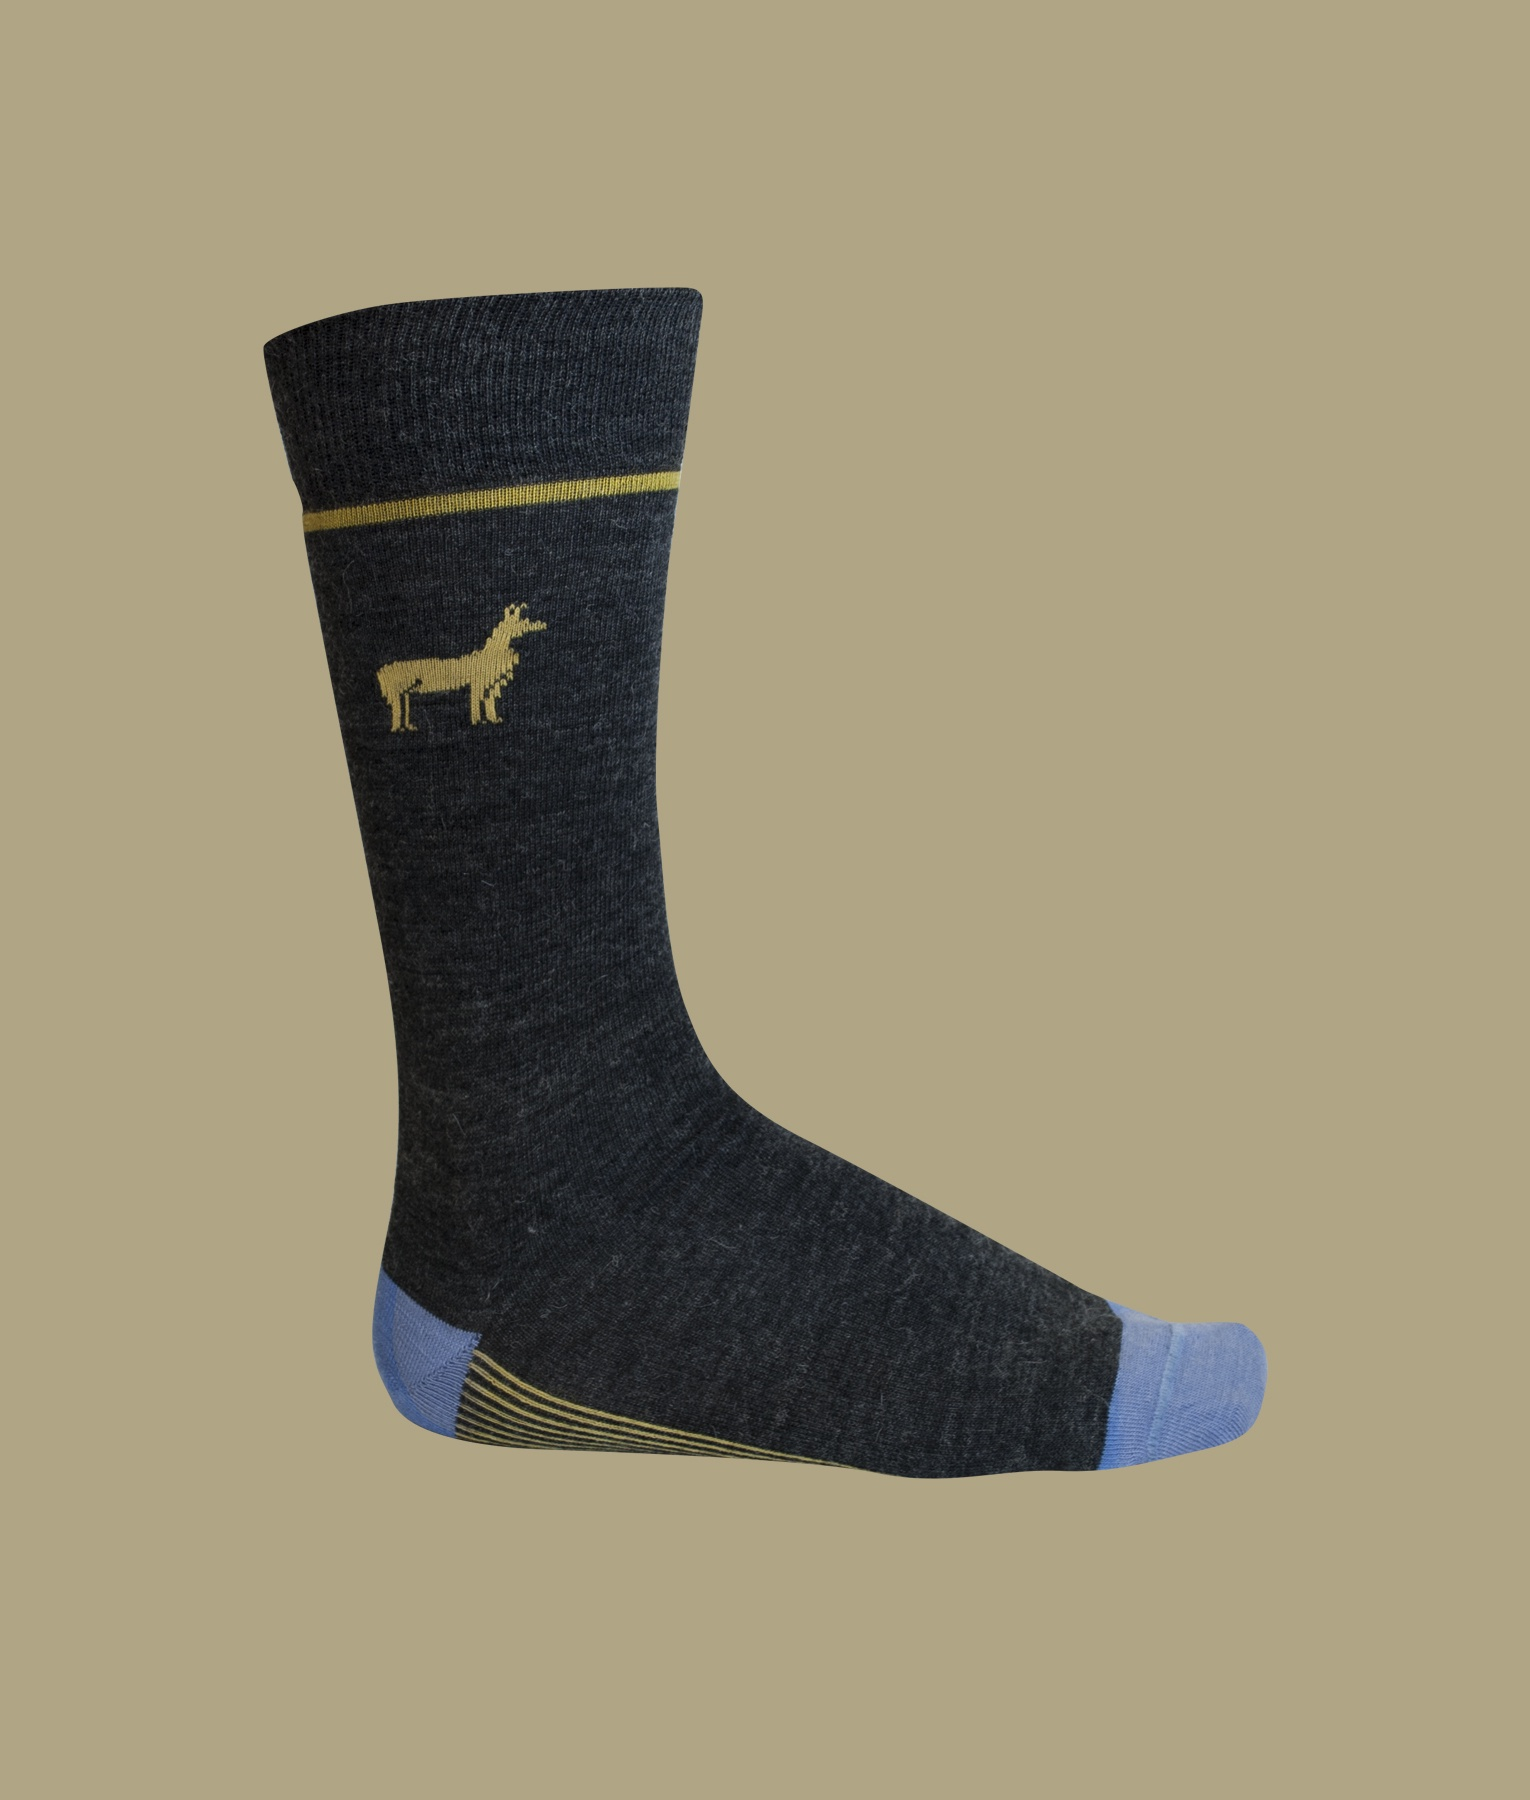 MEN'S STRIPED BI-COLOR SOCKS WITH ALPACA FIGURE